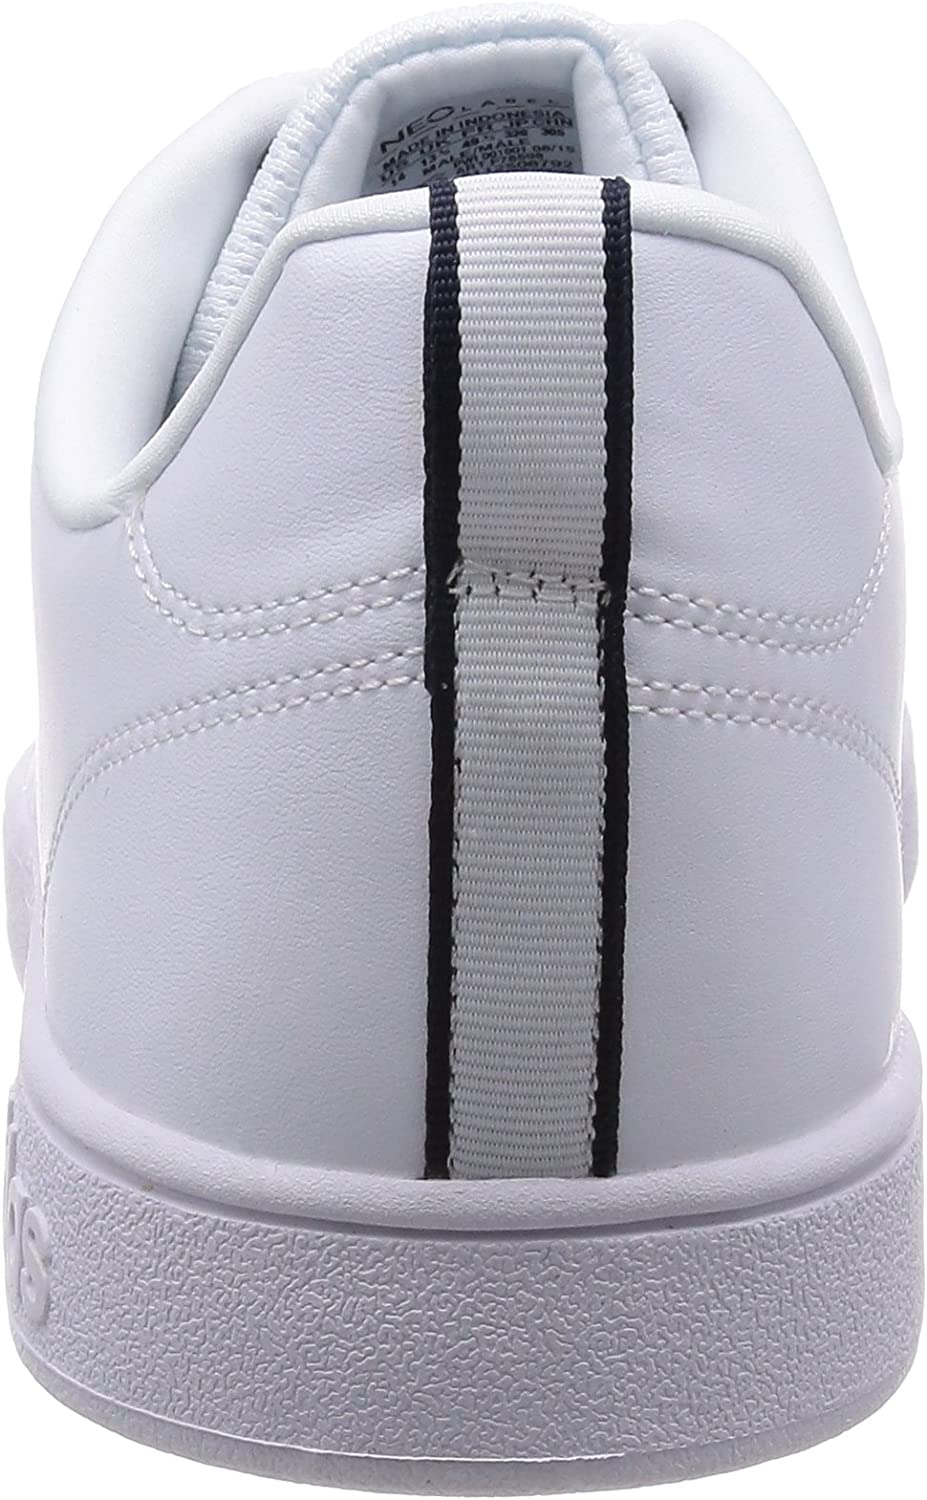 adidas Advantage Clean VS - Zapatillas para Hombre, Color Blanco/Azul Marino, Talla 50: Amazon.es: Zapatos y complementos